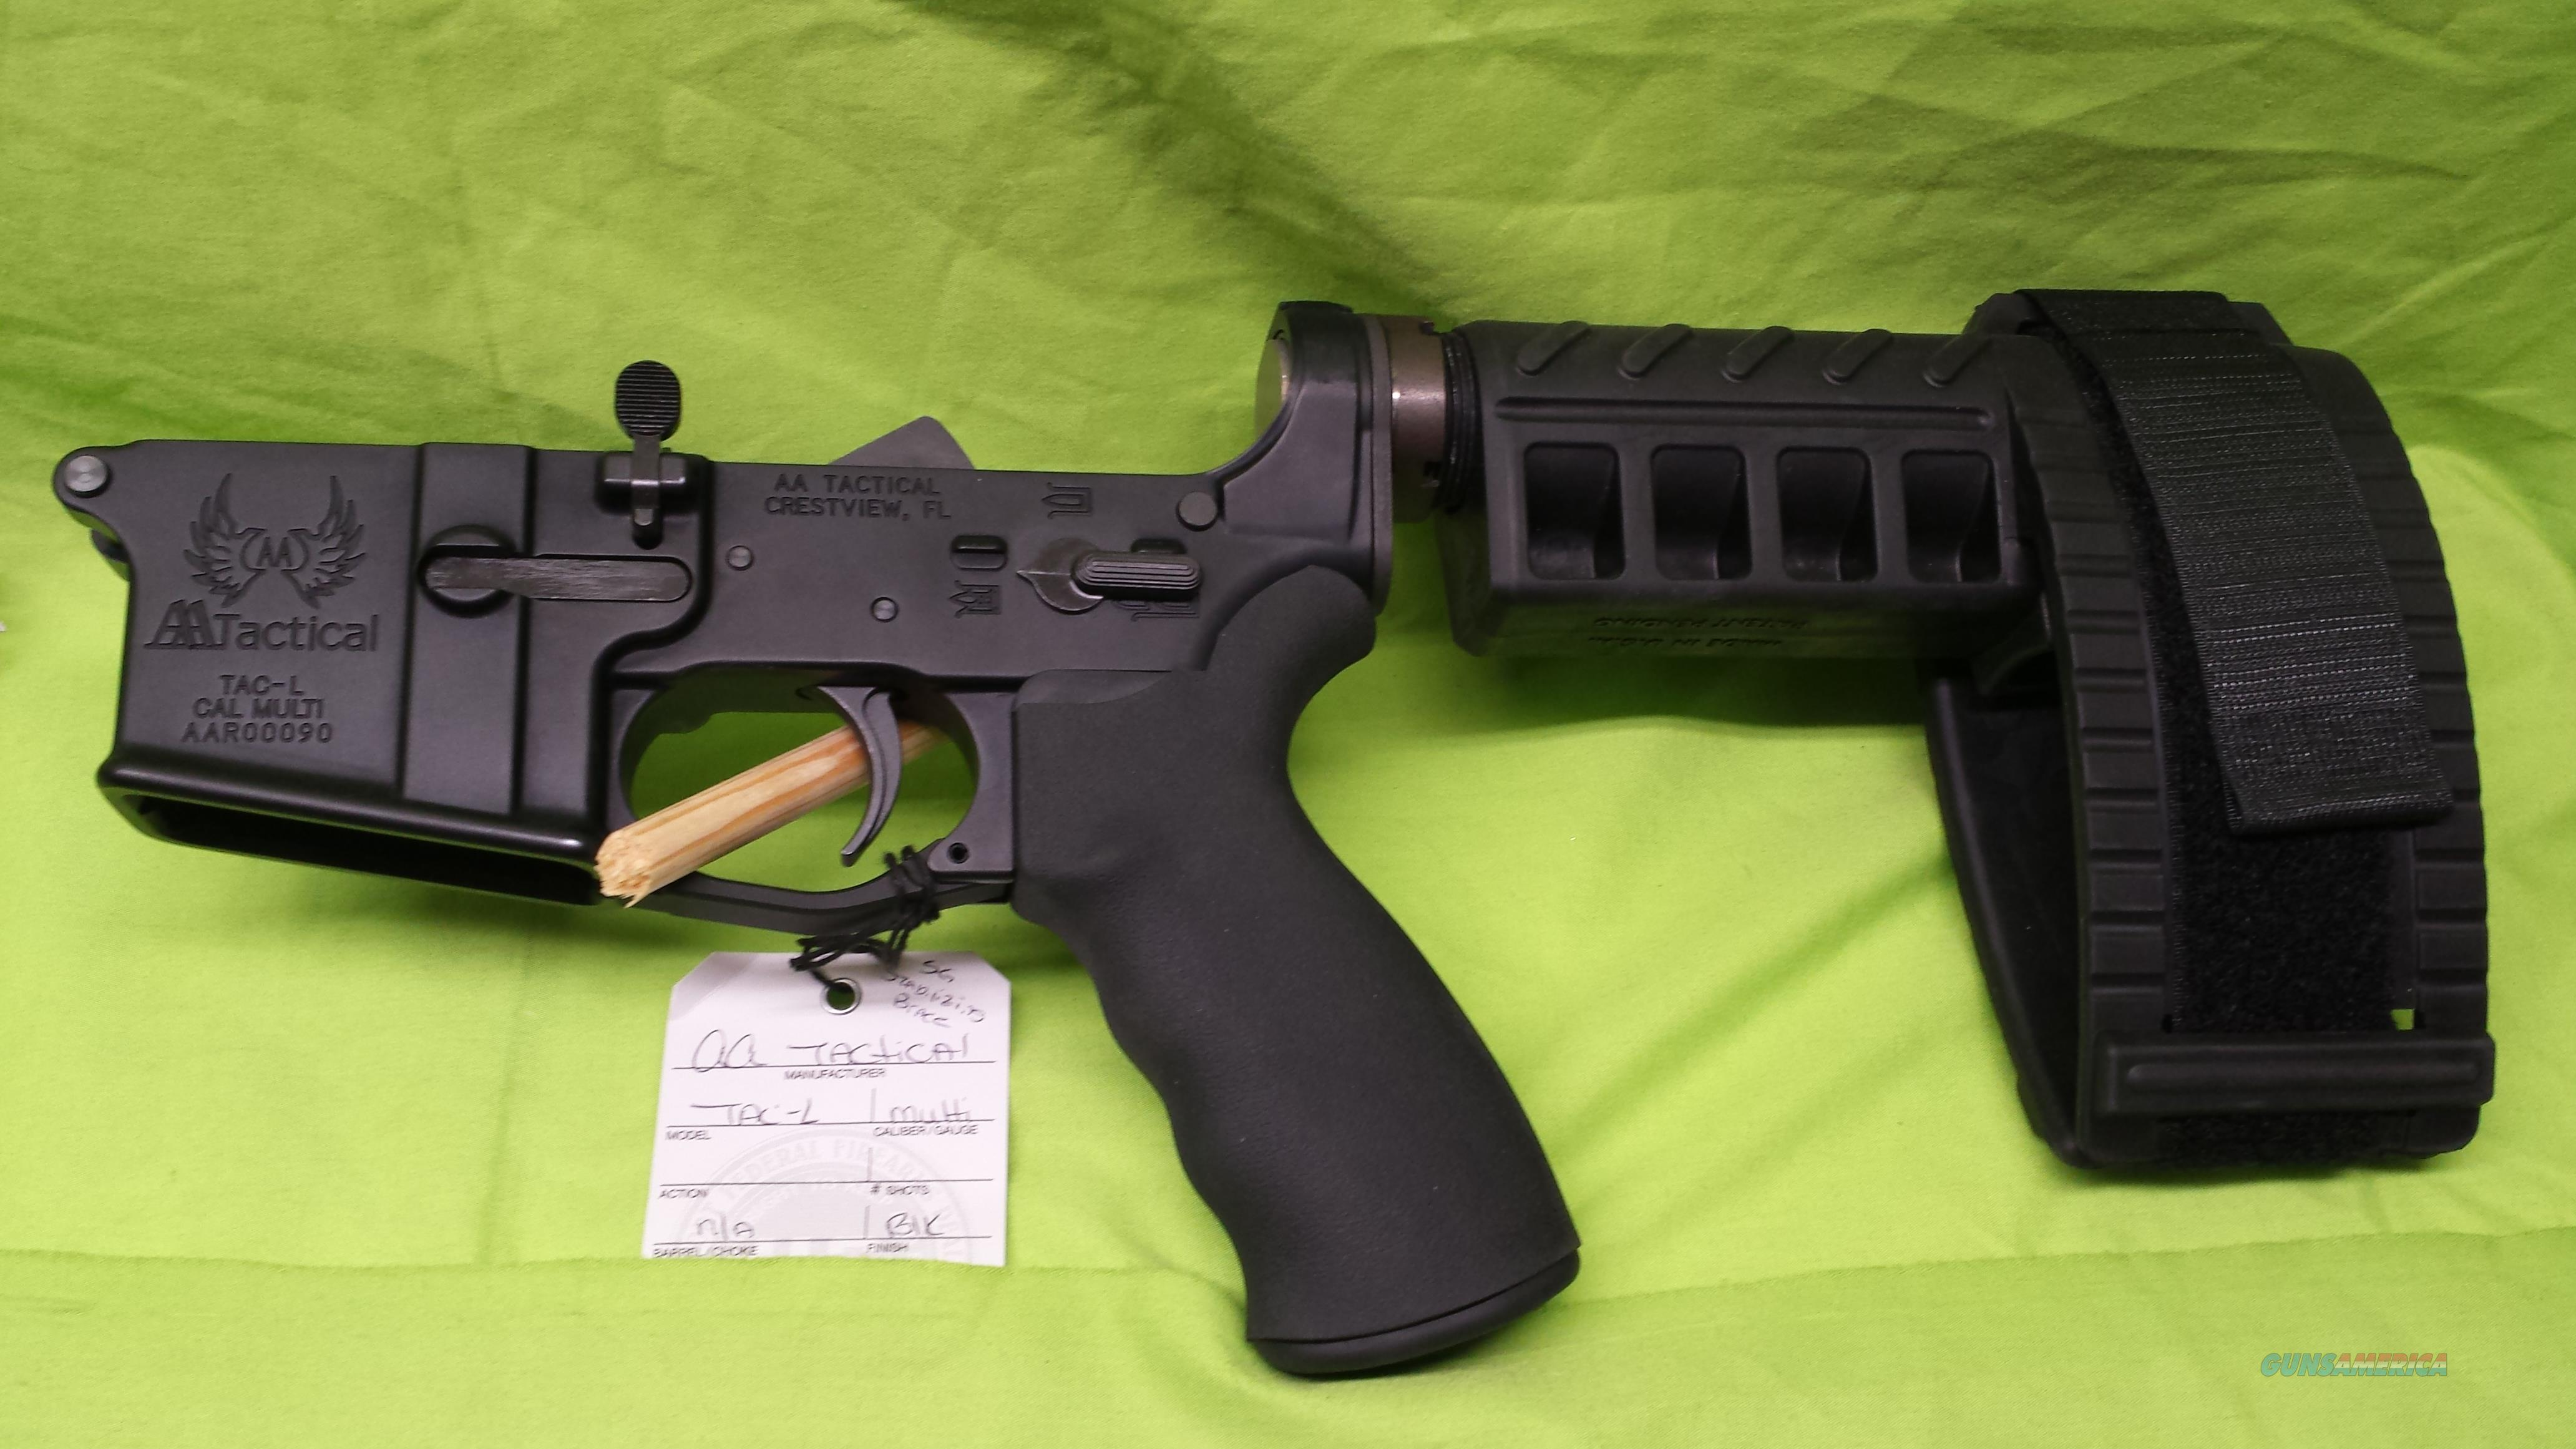 AA TACTICAL PISTOL SIG STABILIZING BRACE AR 15 BLACK COMPLETE LOWER  Guns > Rifles > AR-15 Rifles - Small Manufacturers > Lower Only